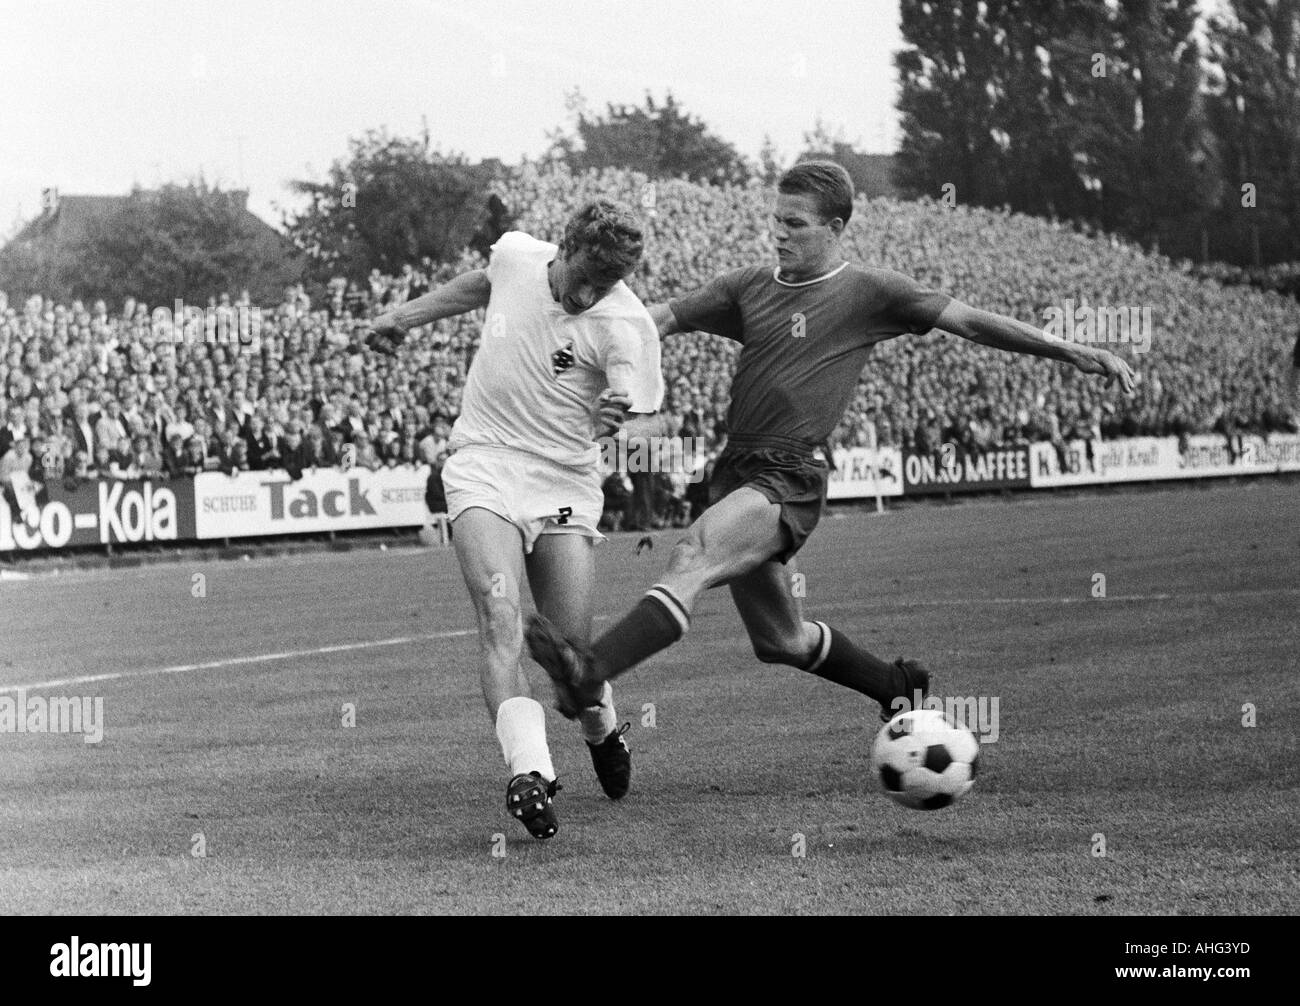 football, Bundesliga, 1967/1968, Borussia Moenchengladbach versus 1. FC Kaiserslautern 8:2, Boekelberg Stadium, scene of the match, duel between Herbert Wimmer (MG) left and Otto Rehagel (FCK) - Stock Image